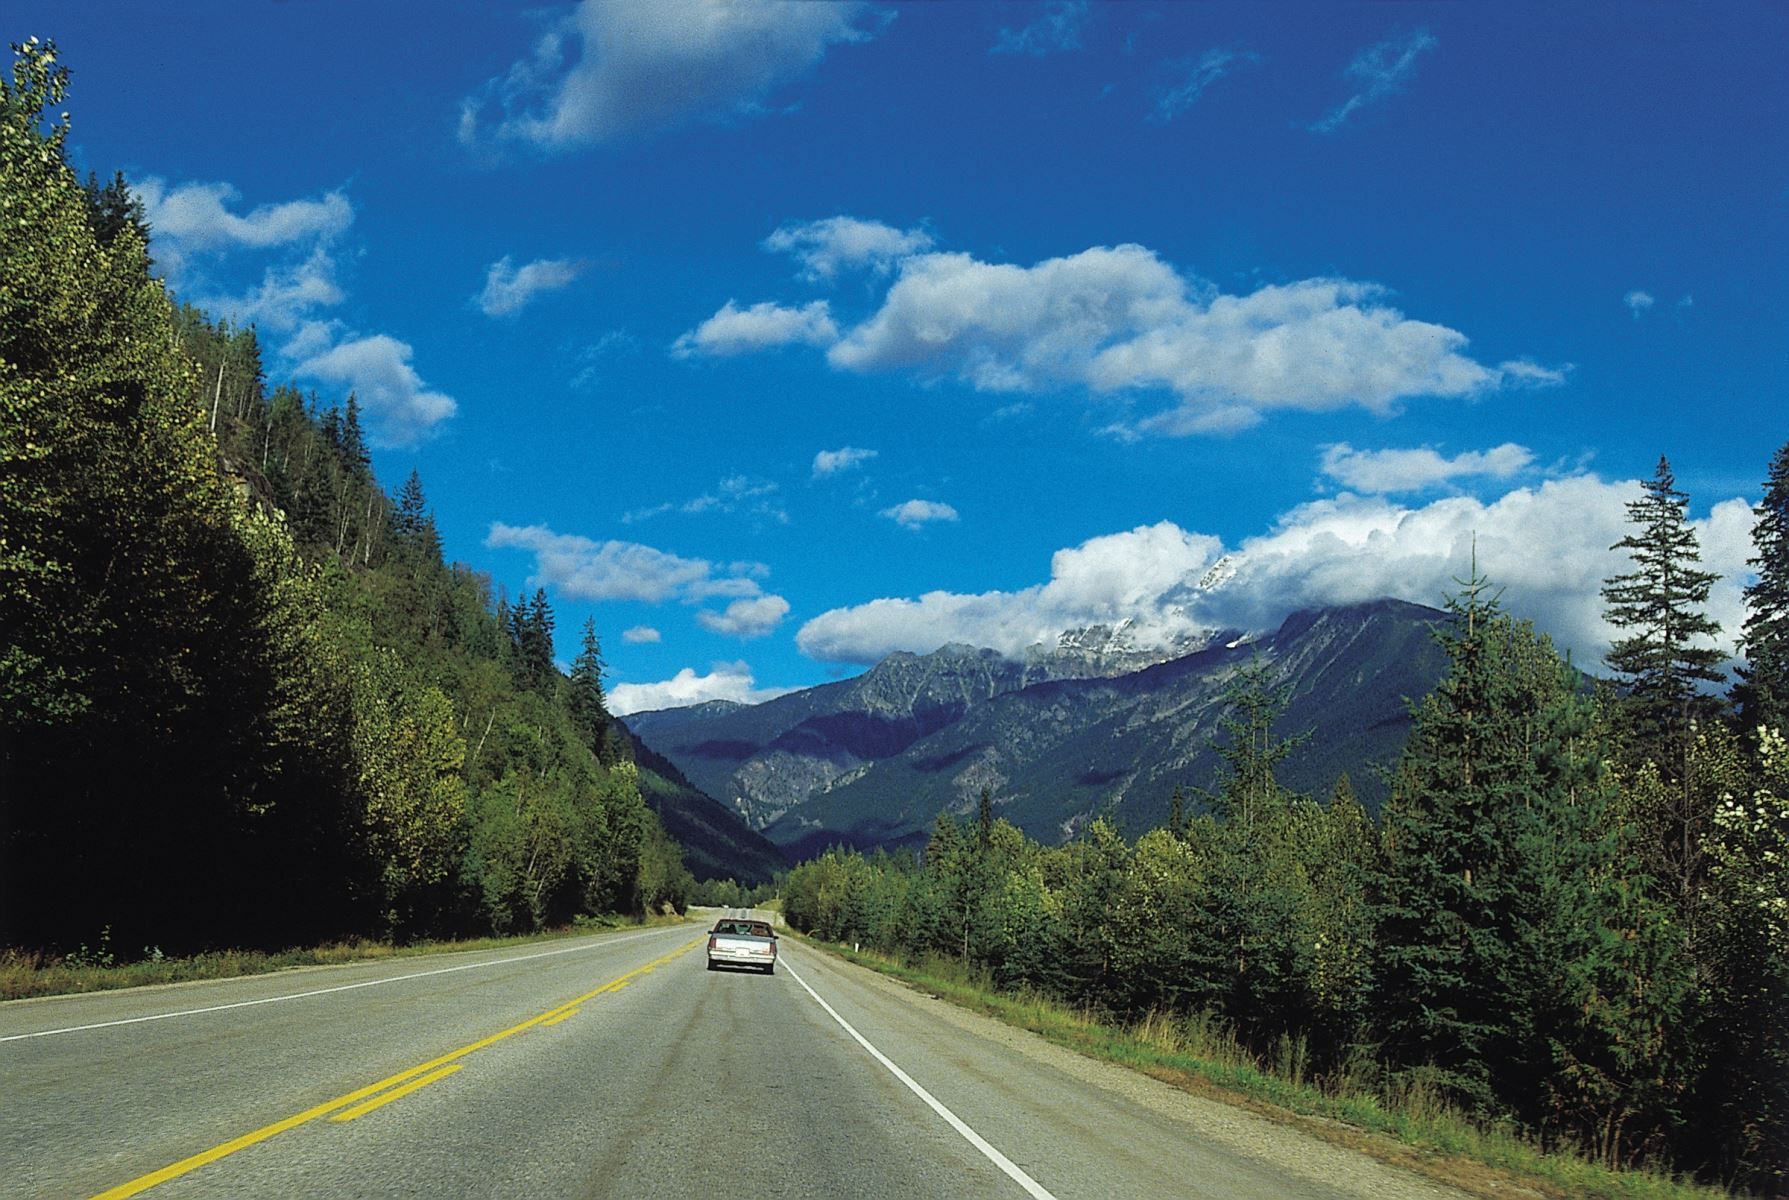 Enjoy the Scenic Route with These 8 Mountain Driving Tips